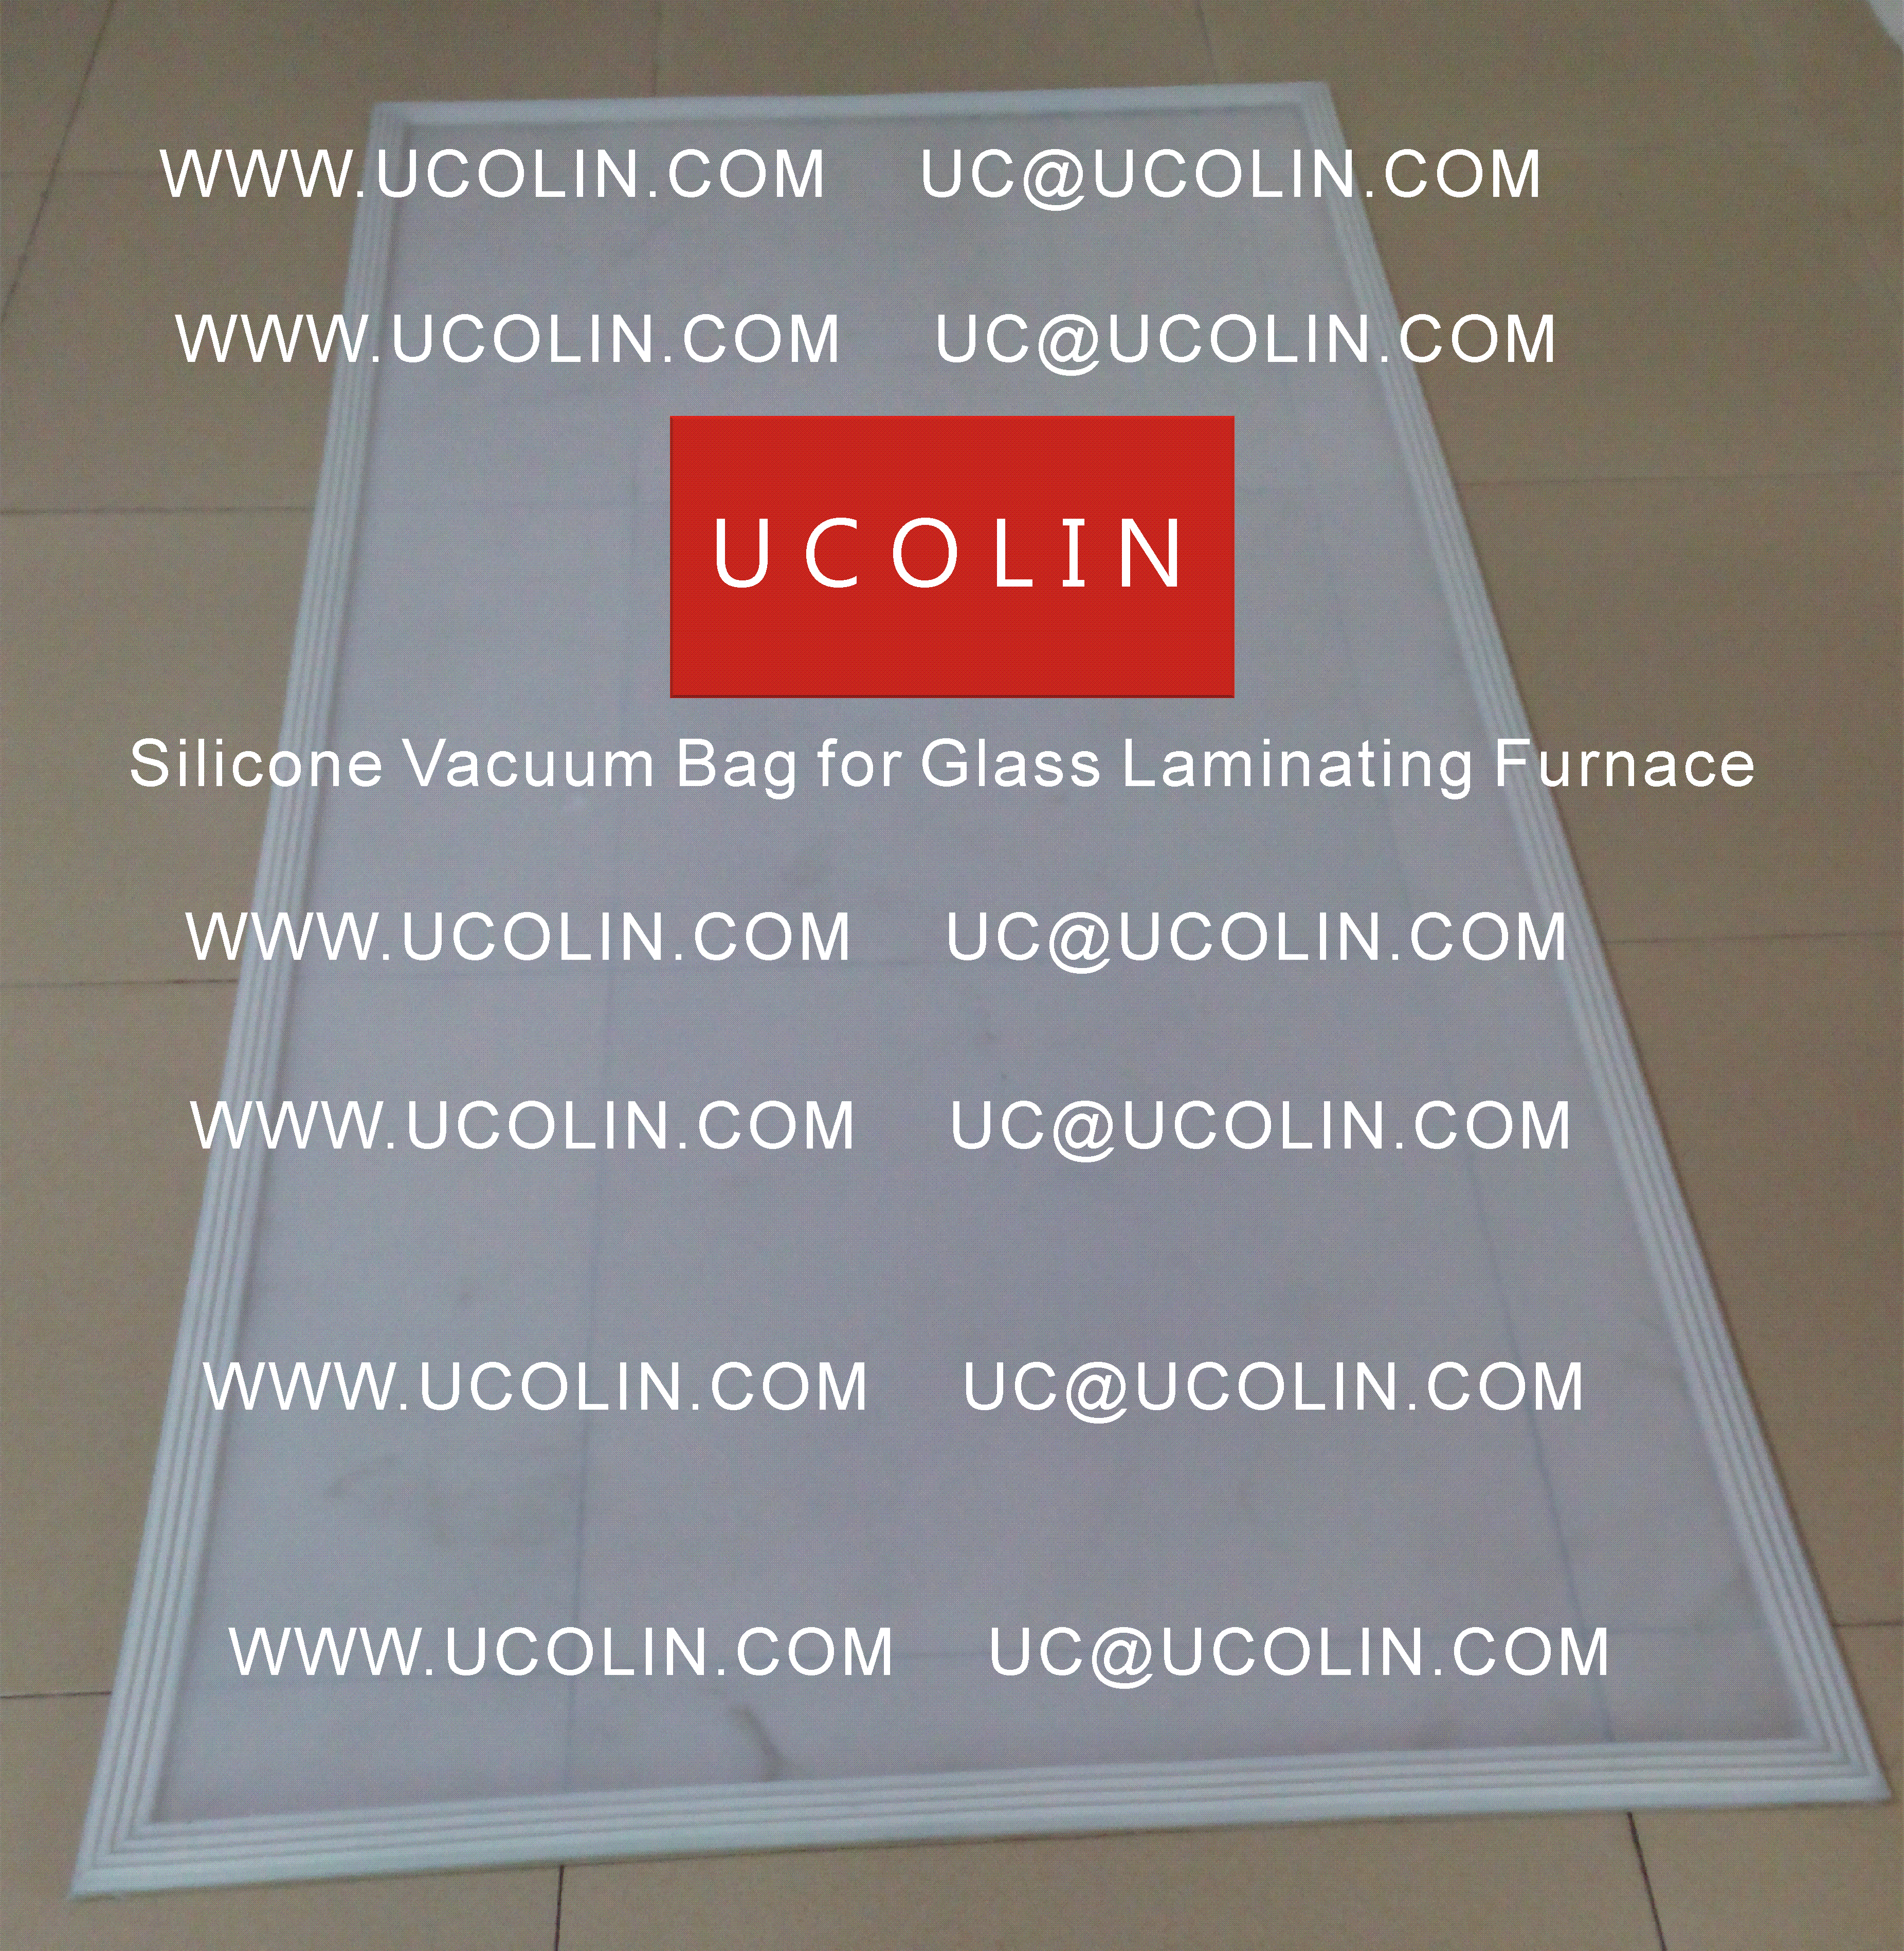 03 Silicone Bag for Glass Laminating Furnace Vacuuming